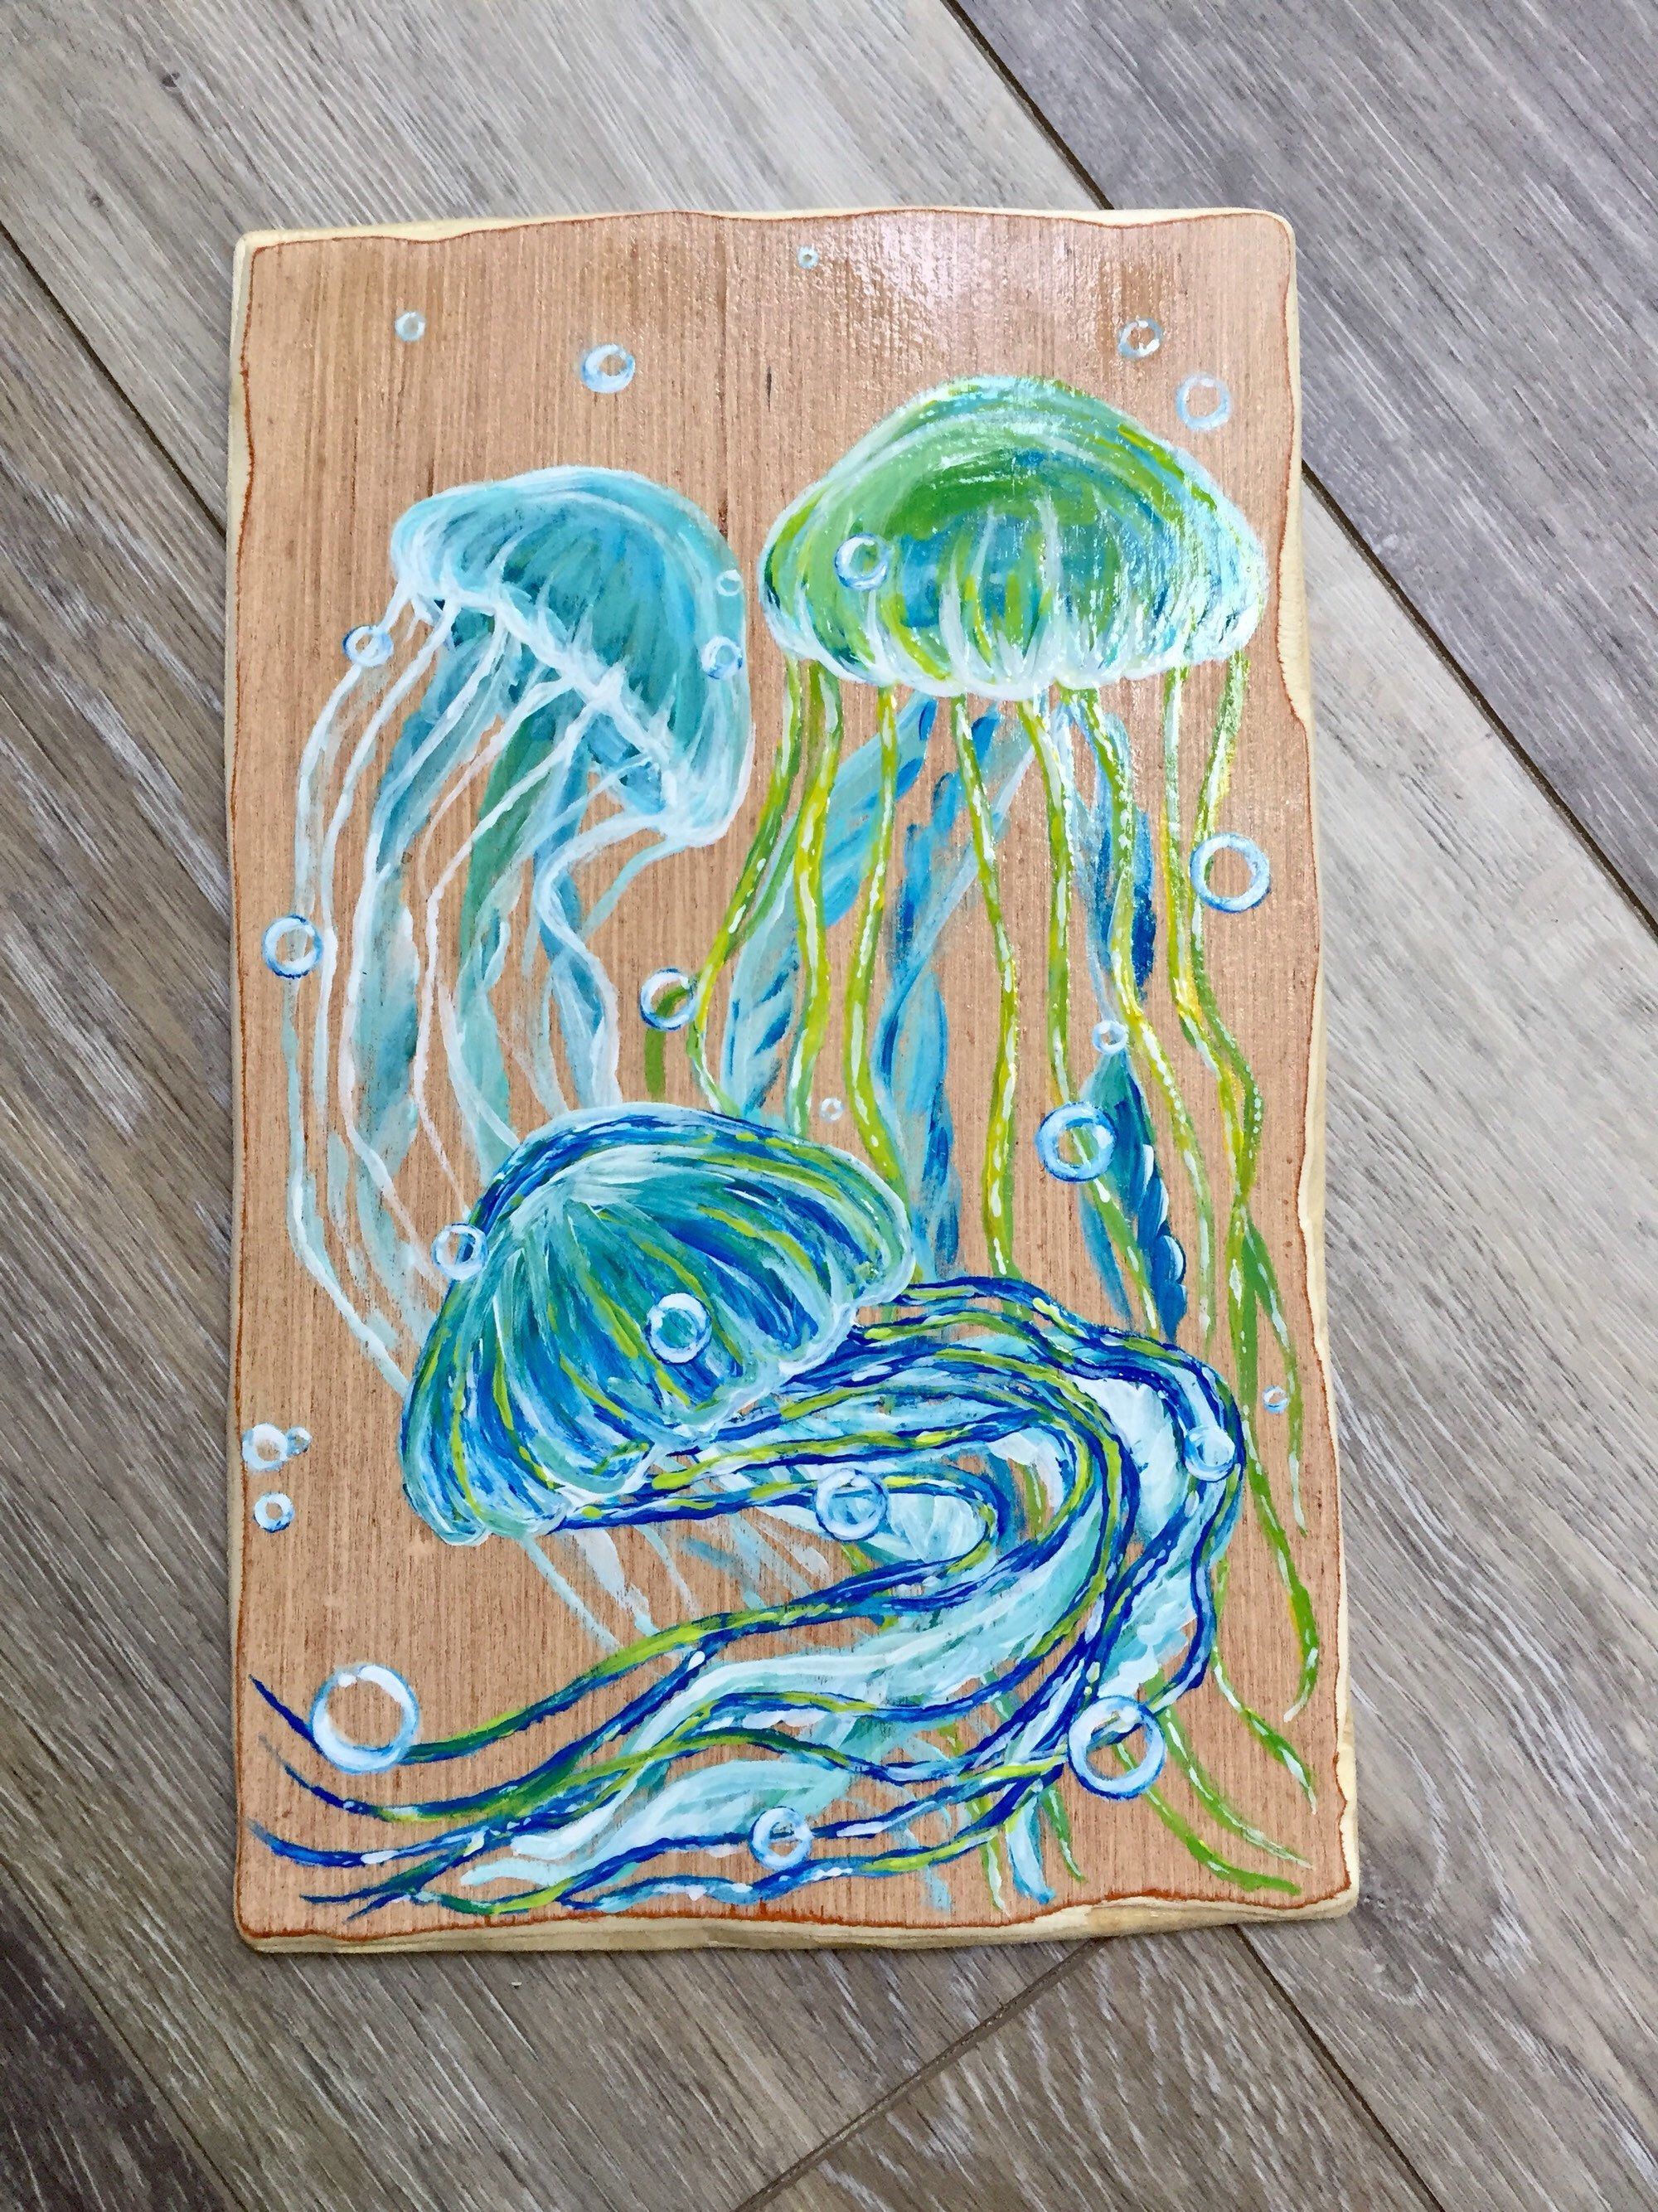 Jellyfish Nautical Wall Hanging Handmade Wooden Sign Beach House Wall Decor Beach Lover Gift Wedding Gift Housewarming Gift Coastal Wall Decor Nautical Wall Hanging Nautical Wall Decor